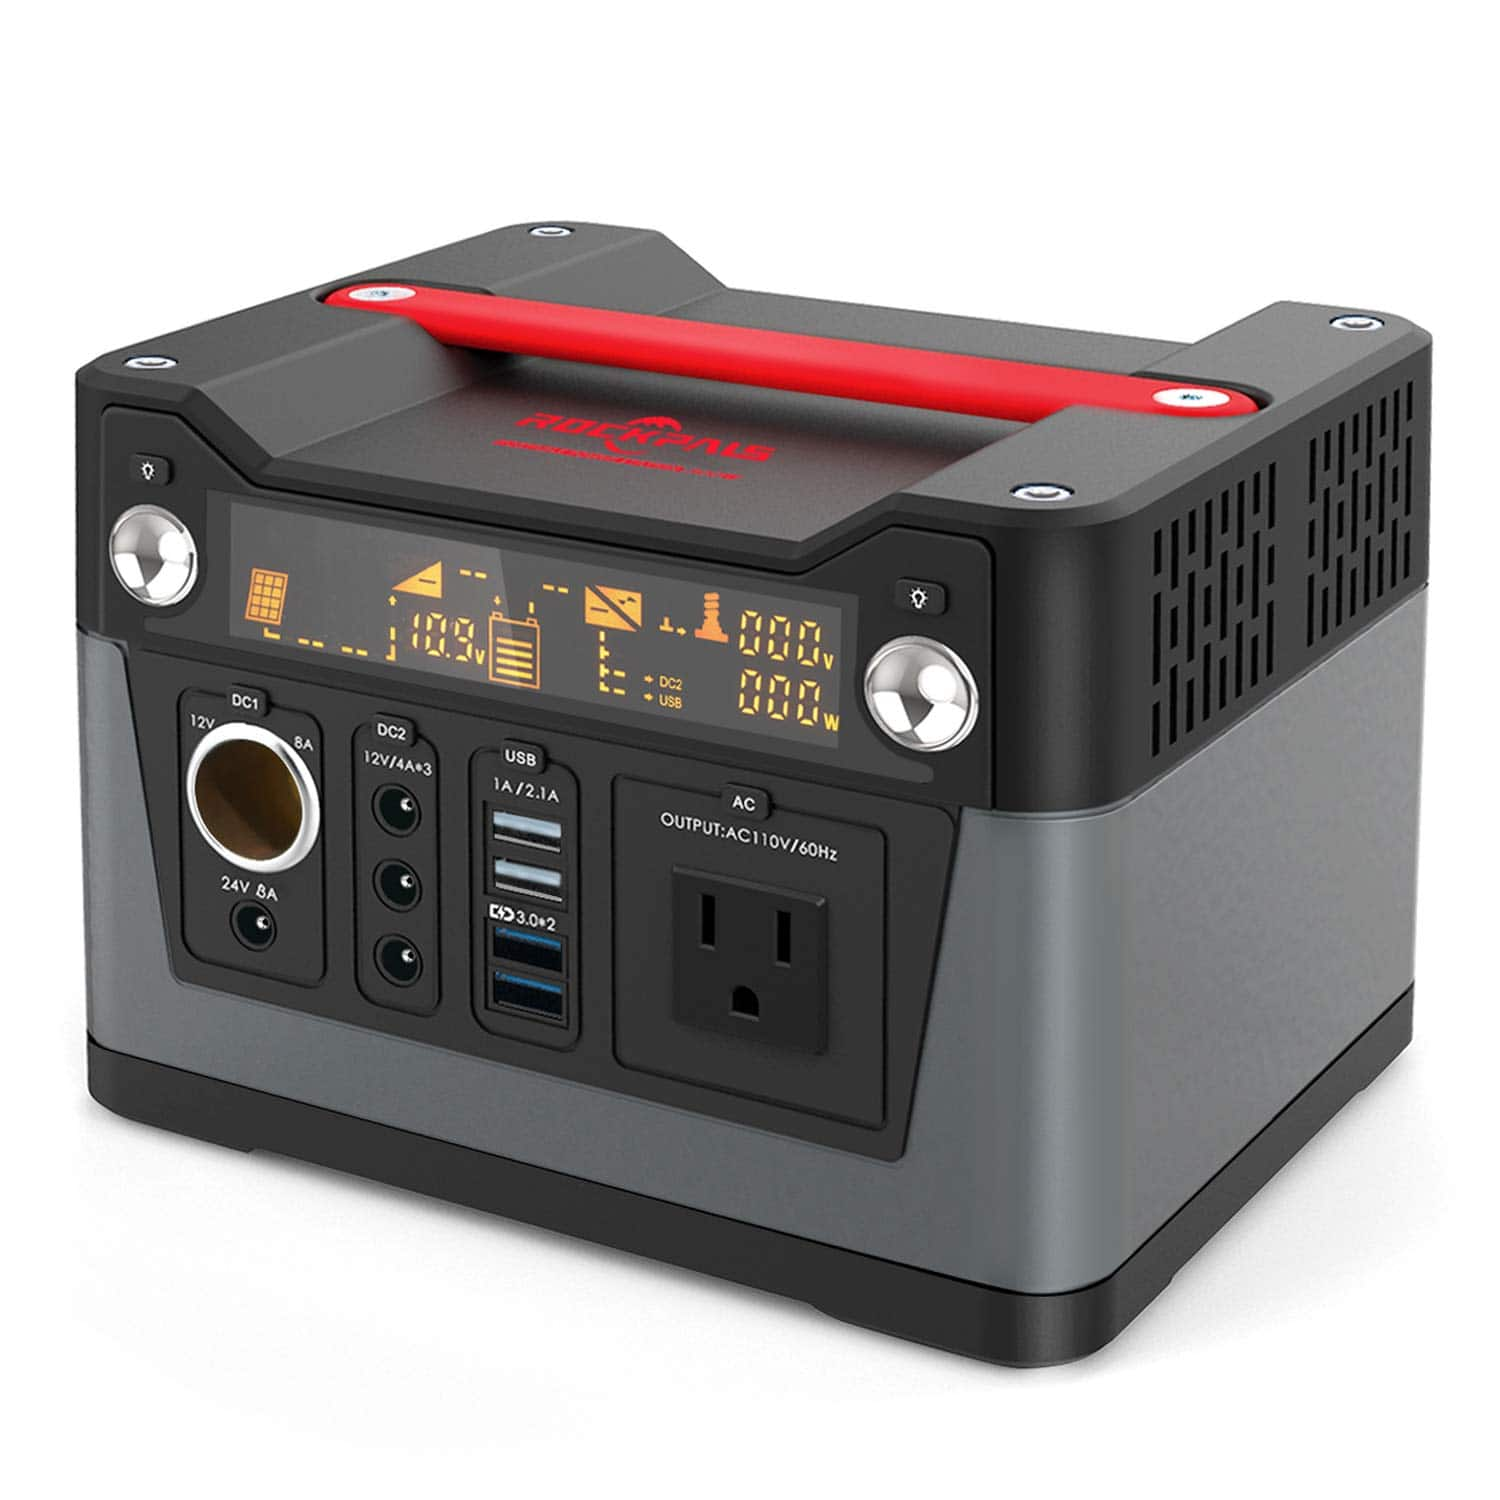 ROCKPALS 300W Portable Generator Lithium Portable Power Station $198.9